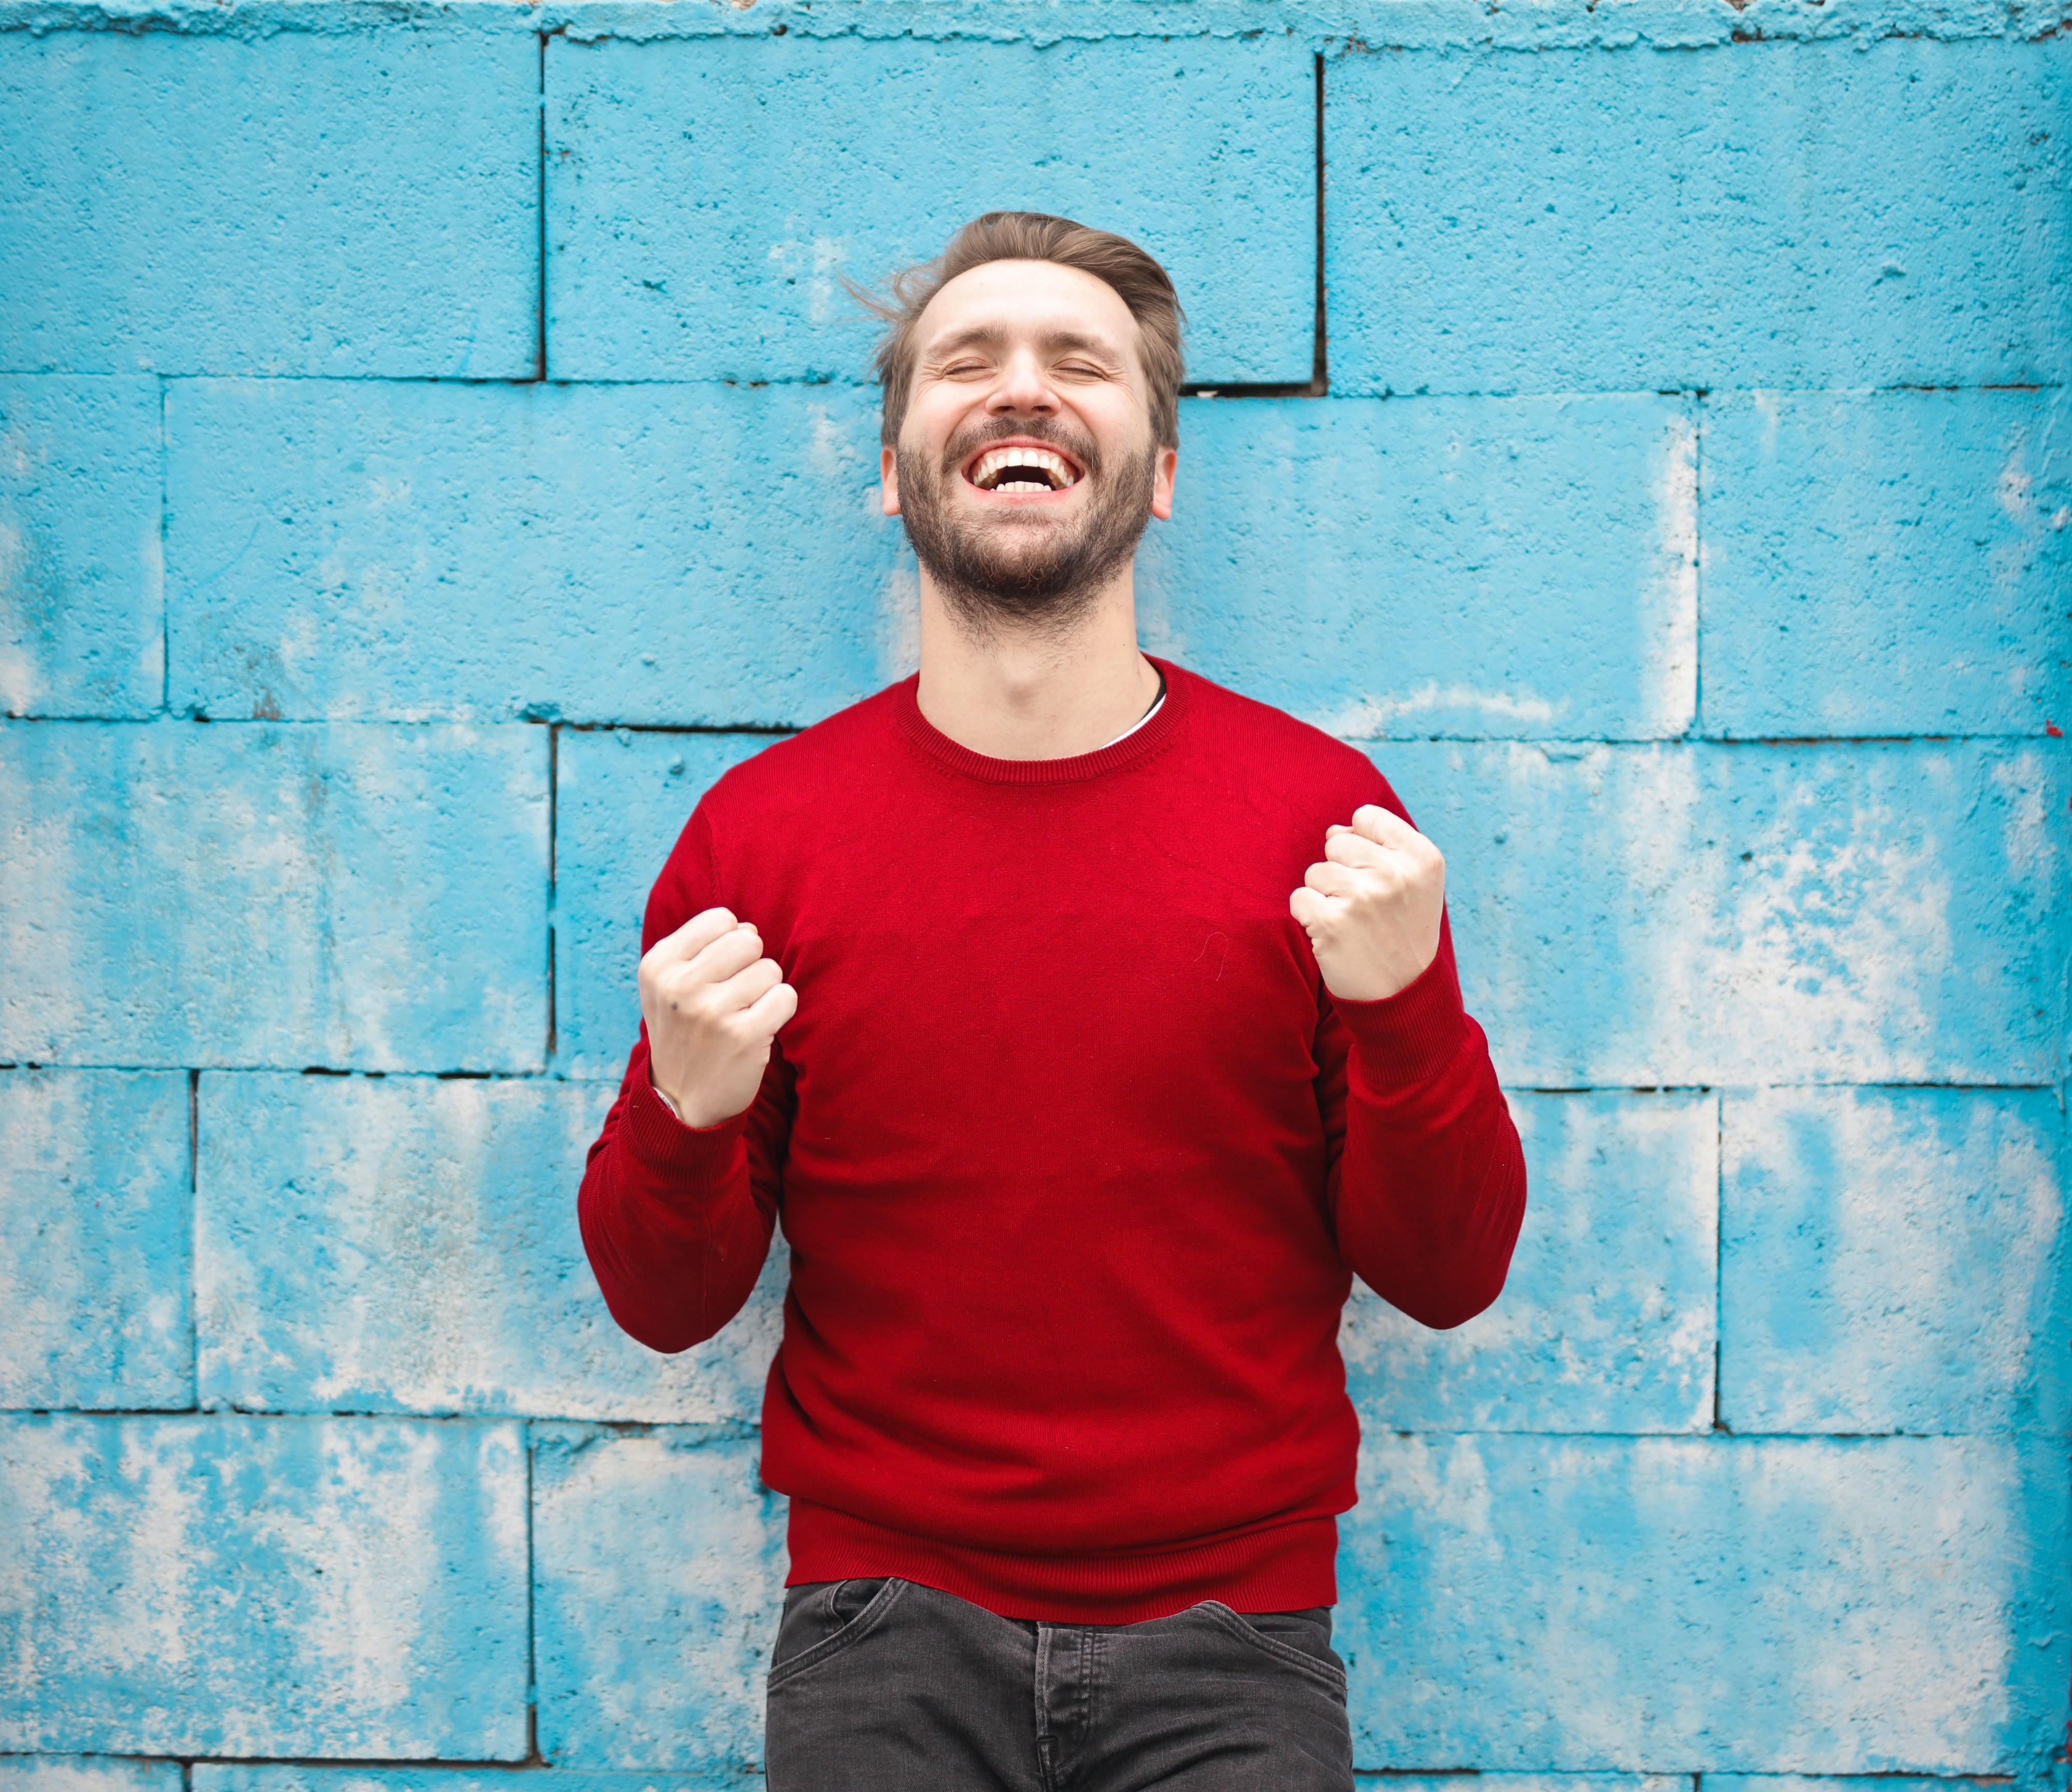 A excited man in a red sweater with his fists in the air in from of a blue brick wall.